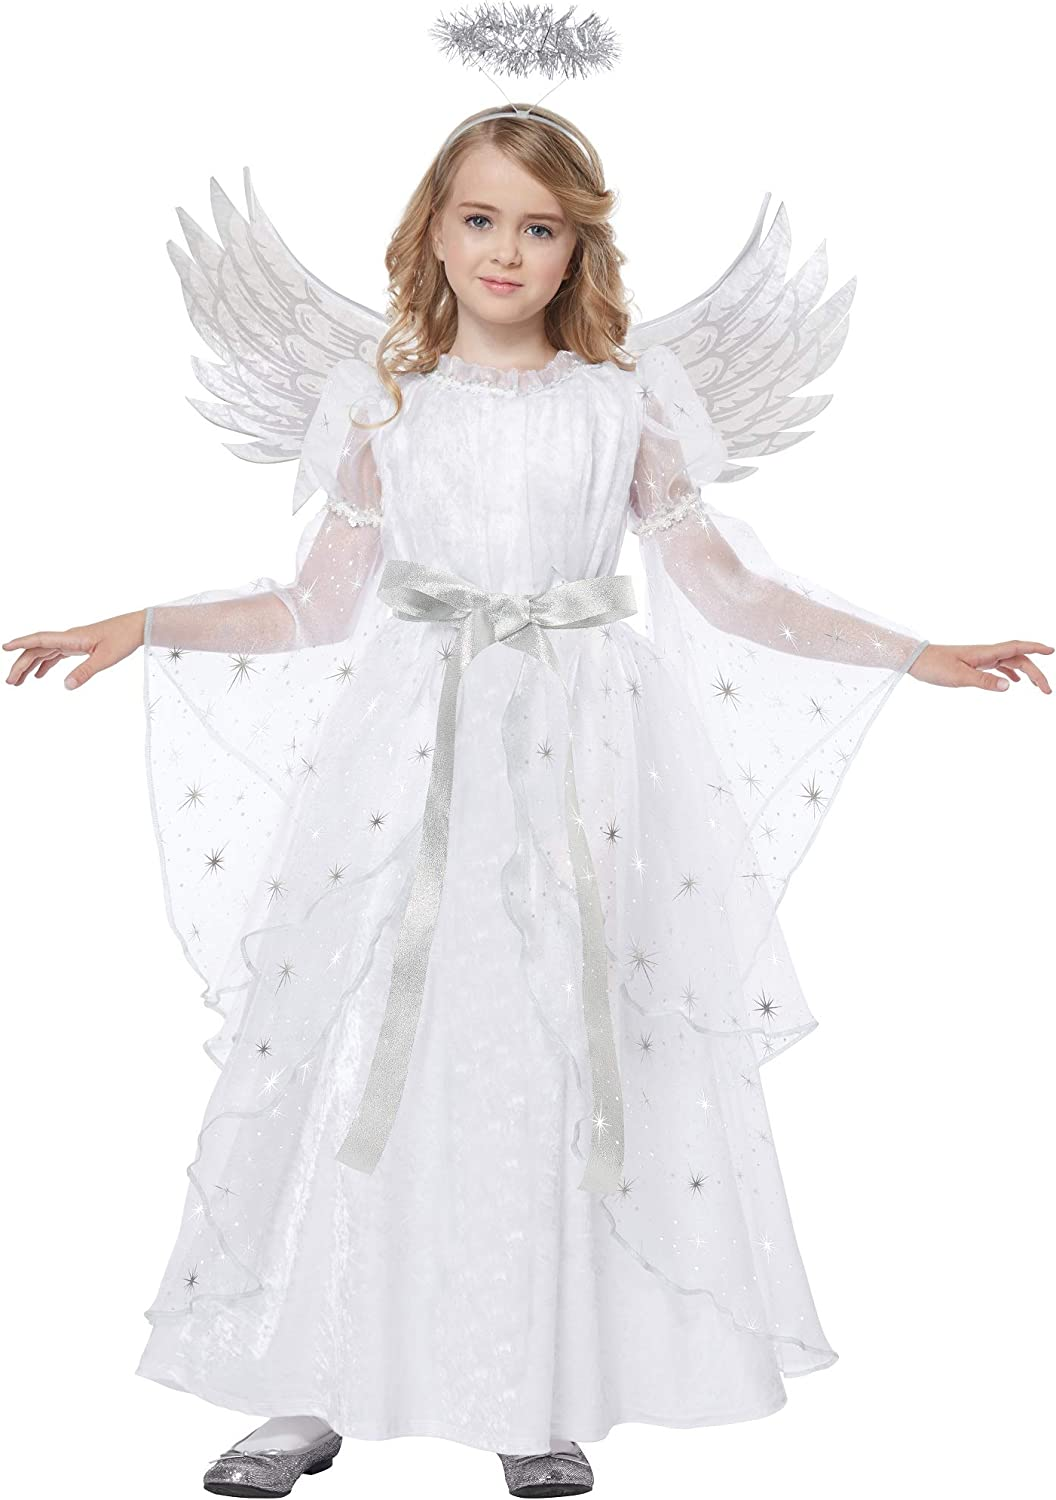 California Costume Starlight Angel Child Costume